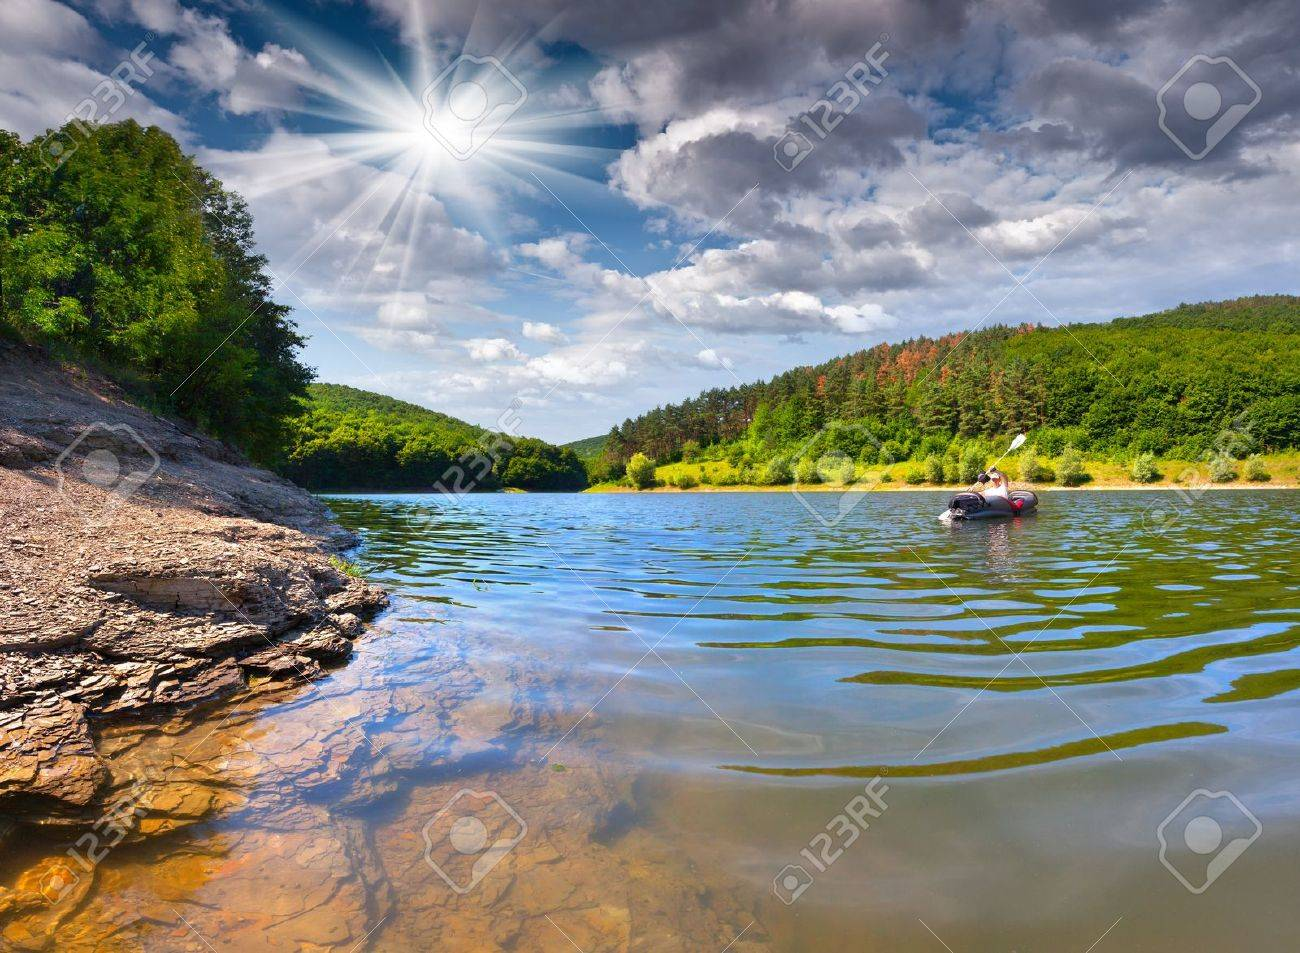 summer trip on the river by canoe Stock Photo - 19454651